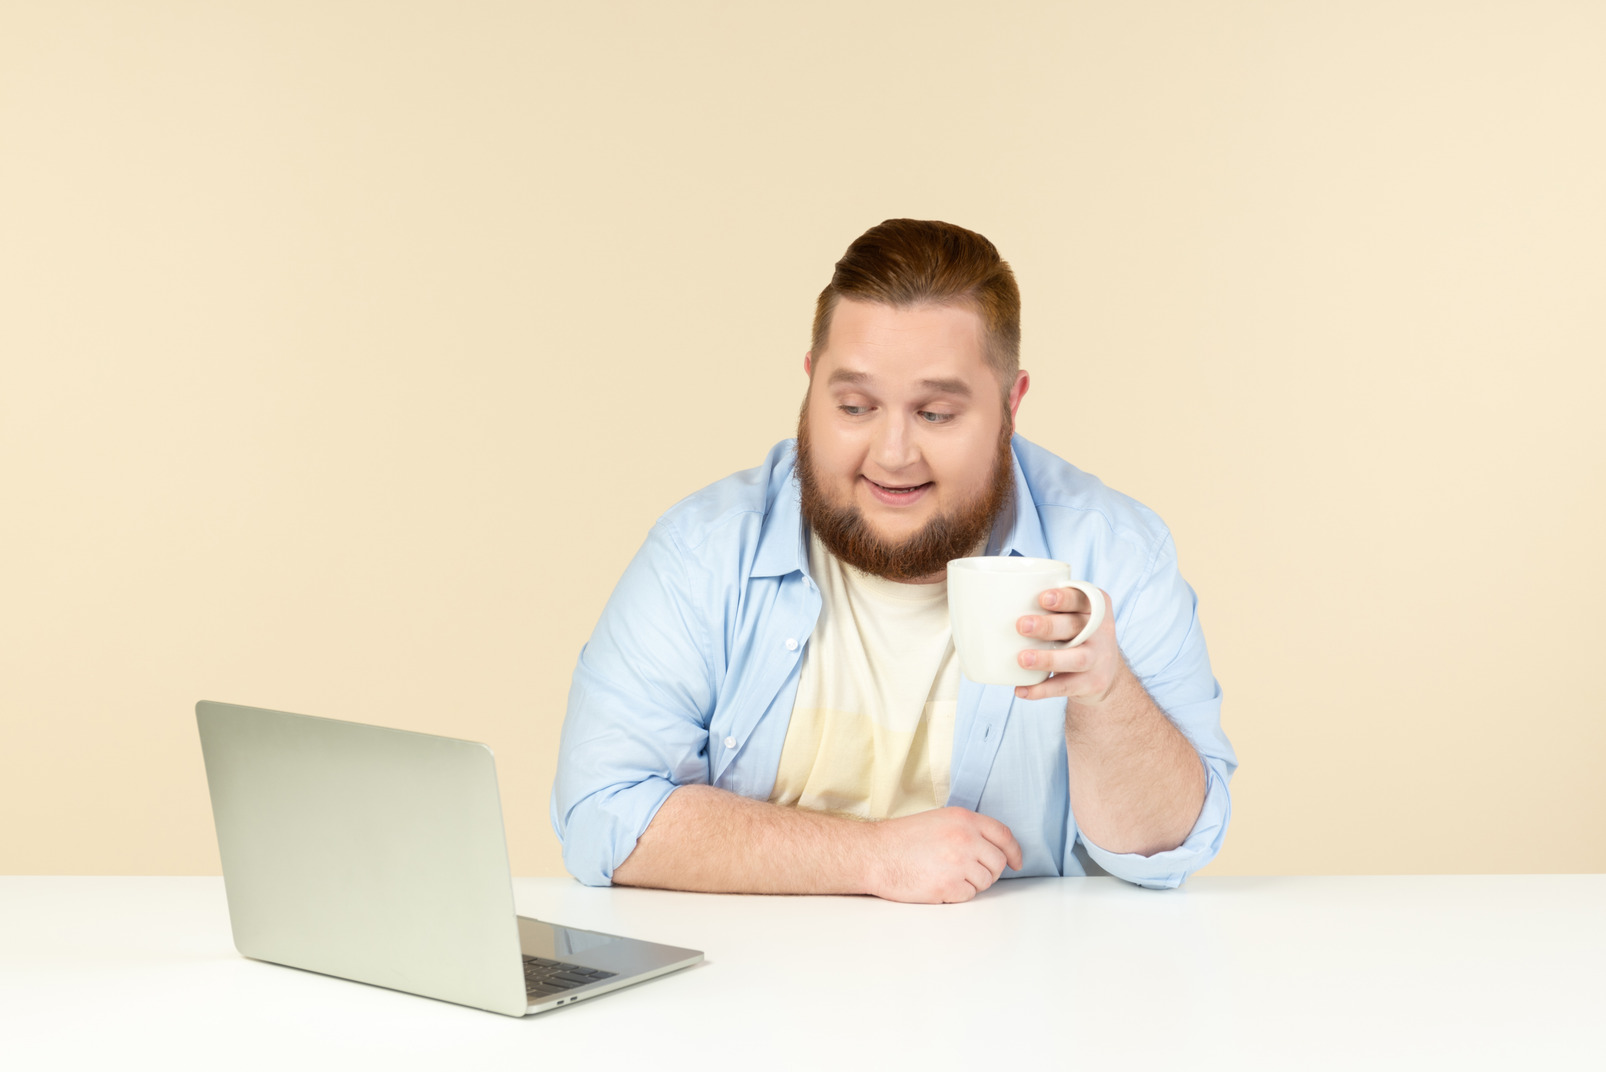 Young overweight man sitting in front of laptop and having tea